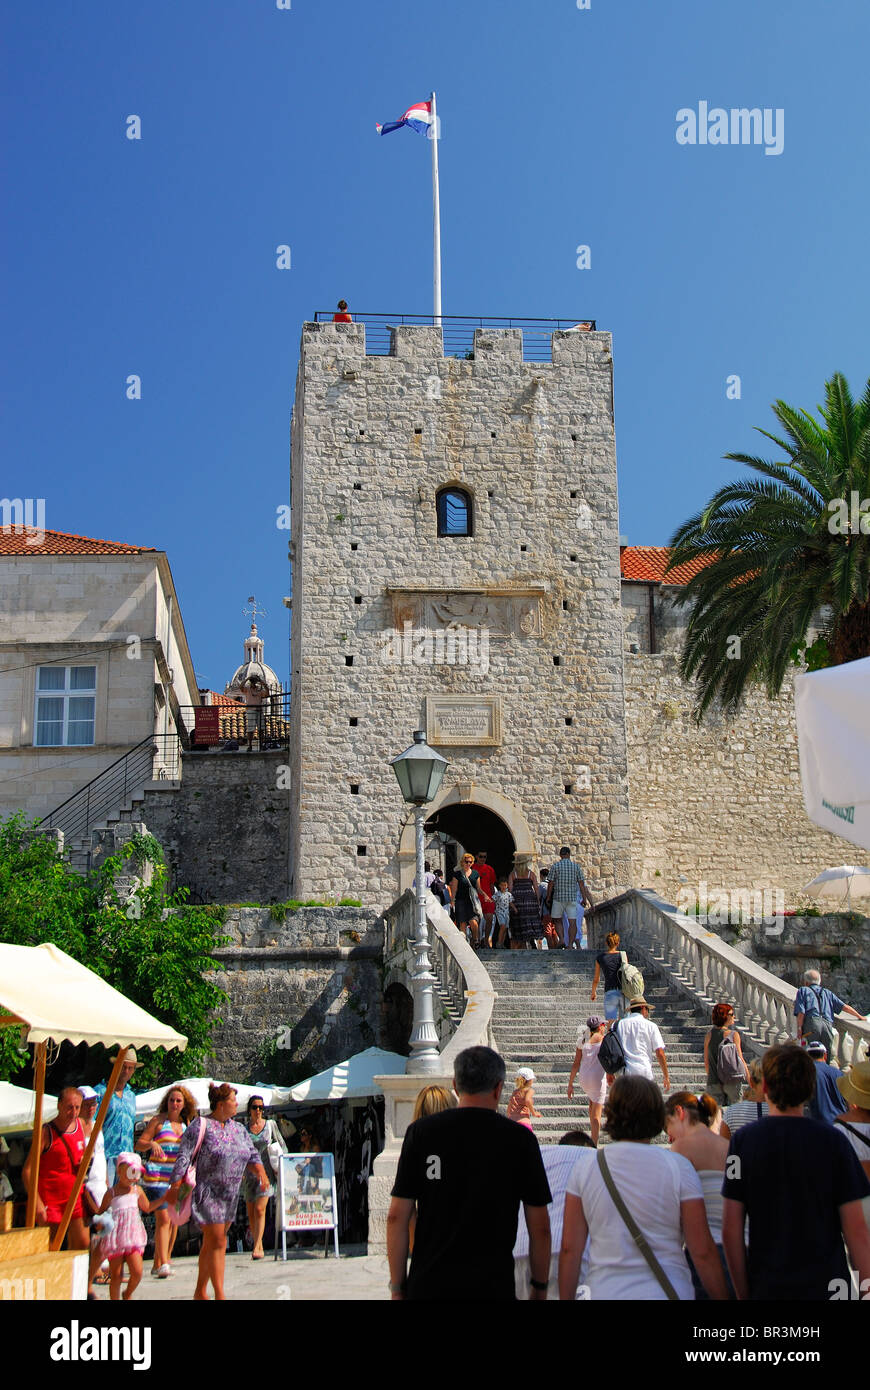 KORCULA, CROATIA. The Land Gate and Revelin in Korcula Town on Korcula Island. - Stock Image